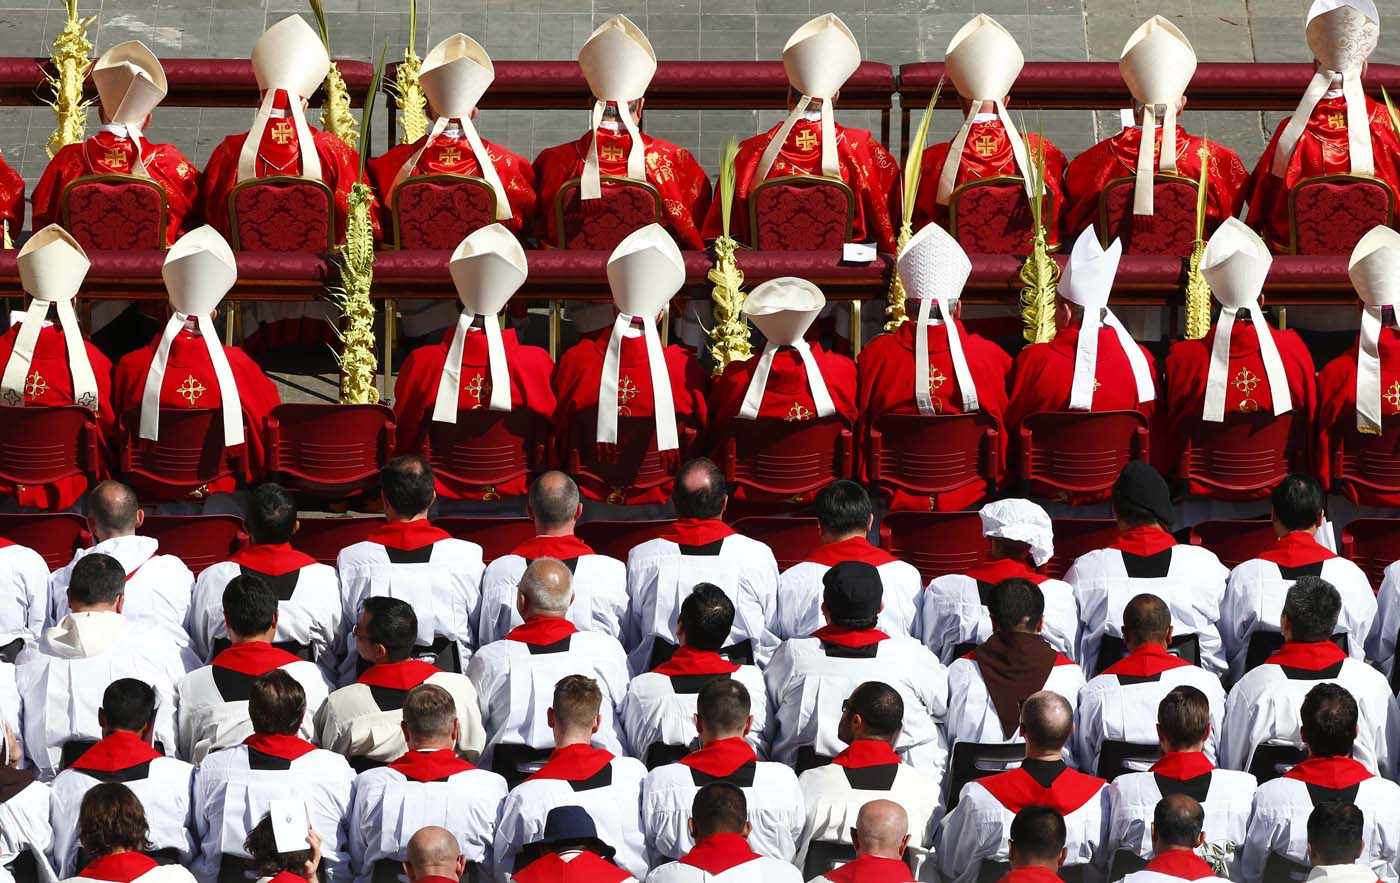 Cardinals and priests attend the Palm Sunday Mass led by Pope Francis  in Saint Peter's Square at the Vatican April 9, 2017. REUTERS/Tony Gentile